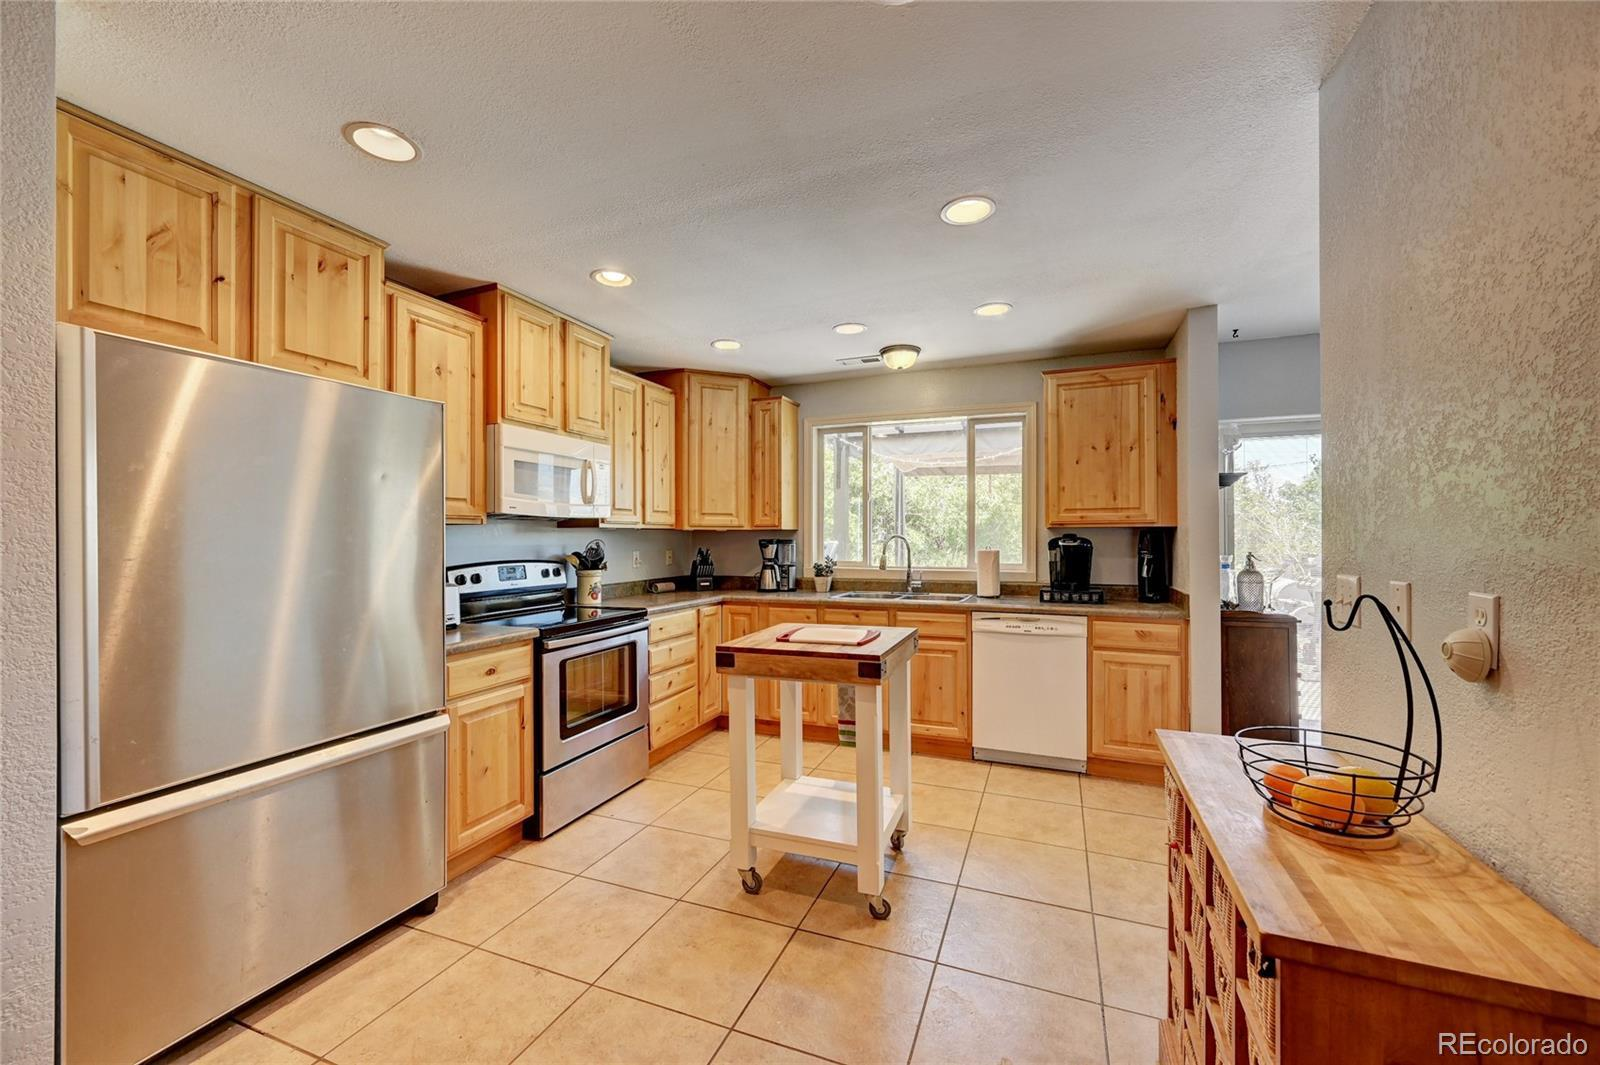 12221 Viewpoint Drive, Lakewood, CO 80401 - #: 4234433